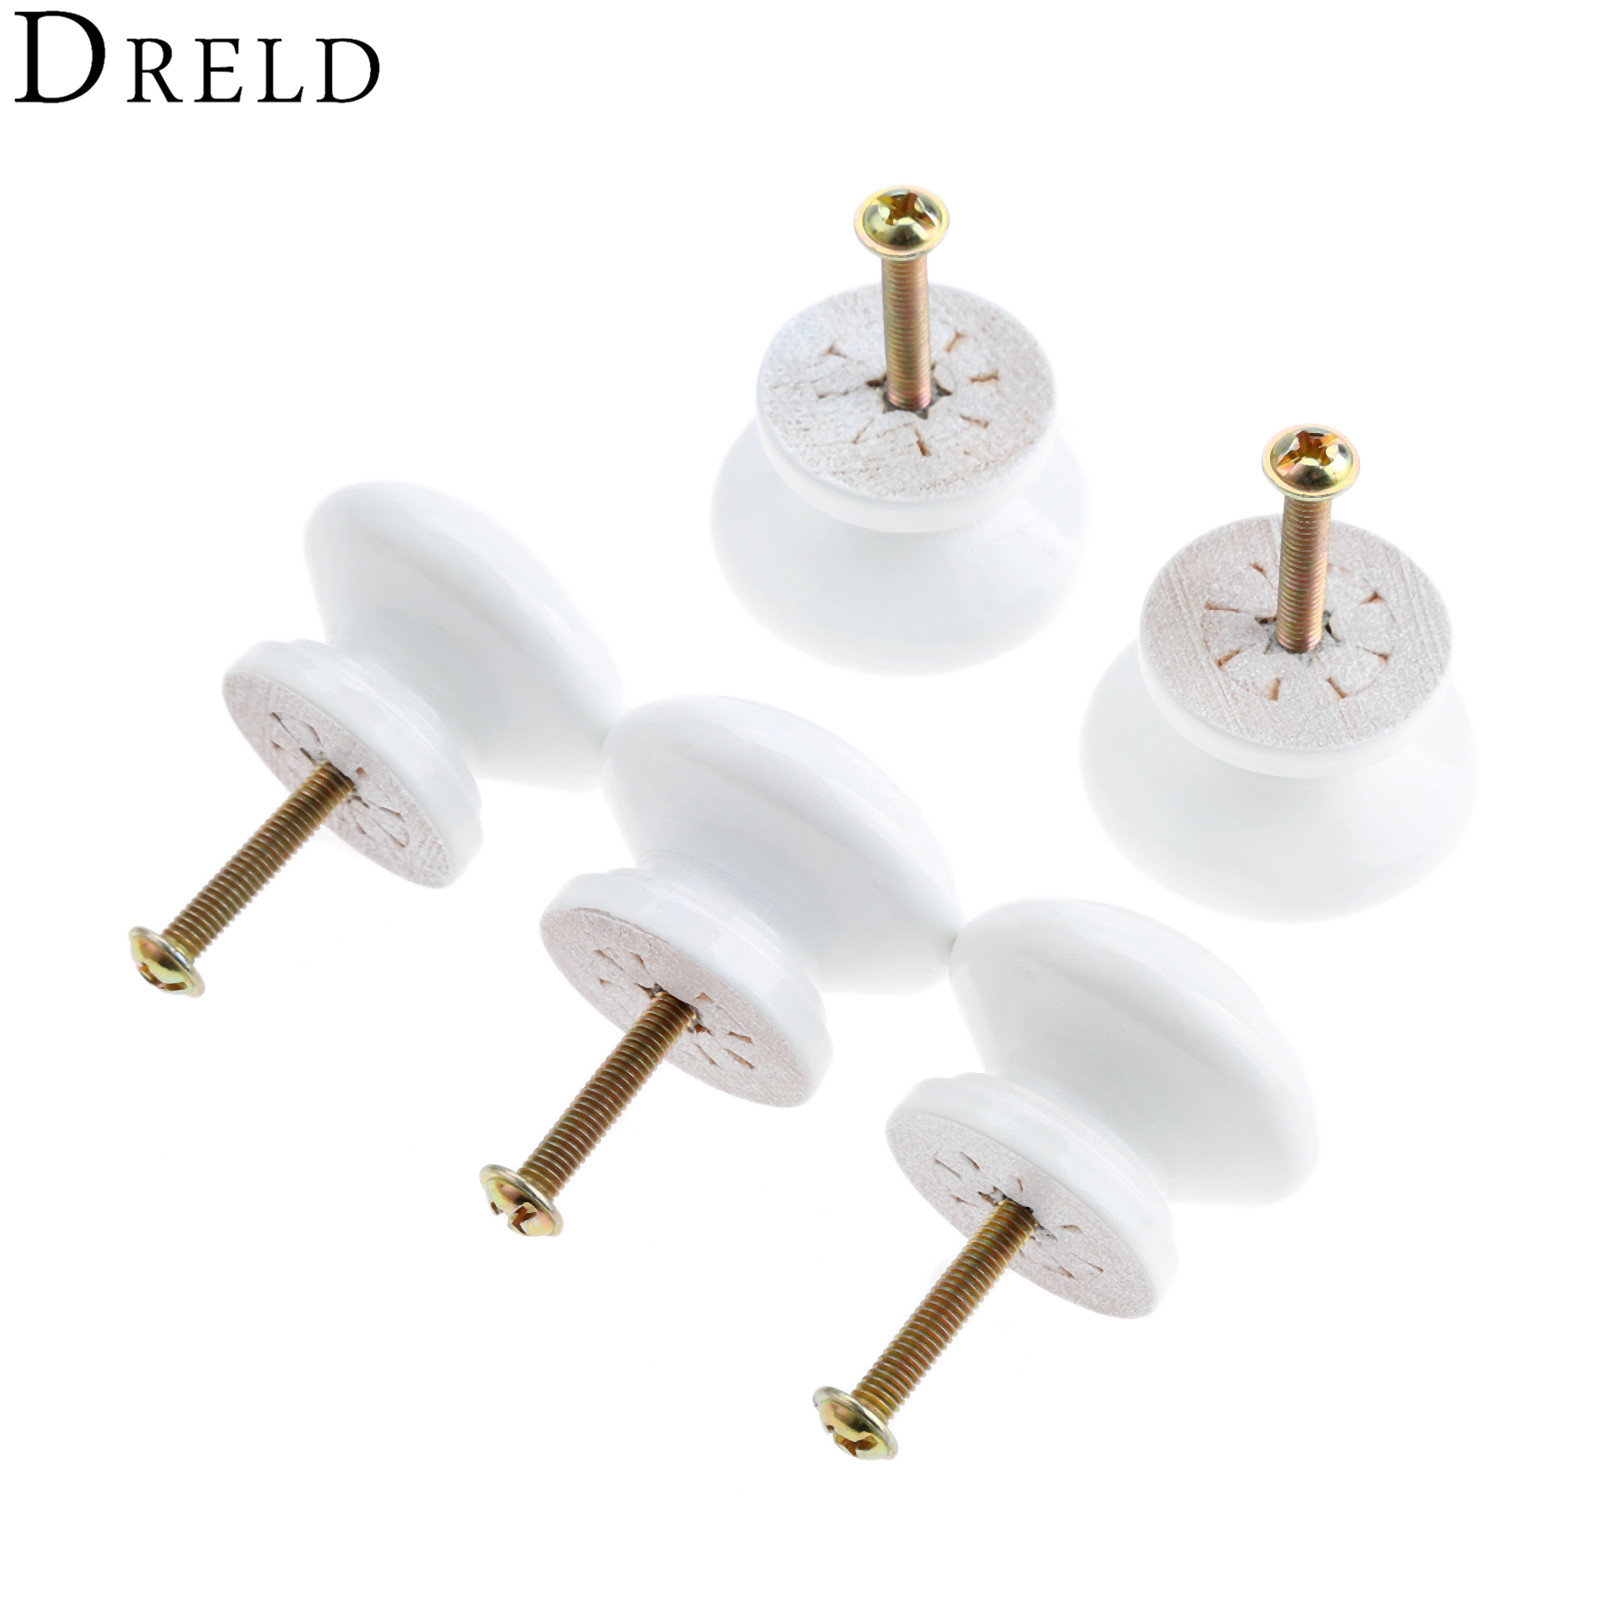 DRELD 5Pcs Wooden Furniture Handles Furniture Hardware Wood Cabinet Knobs and Handles Kitchen Drawer Wardrobe Door Pulls White ...